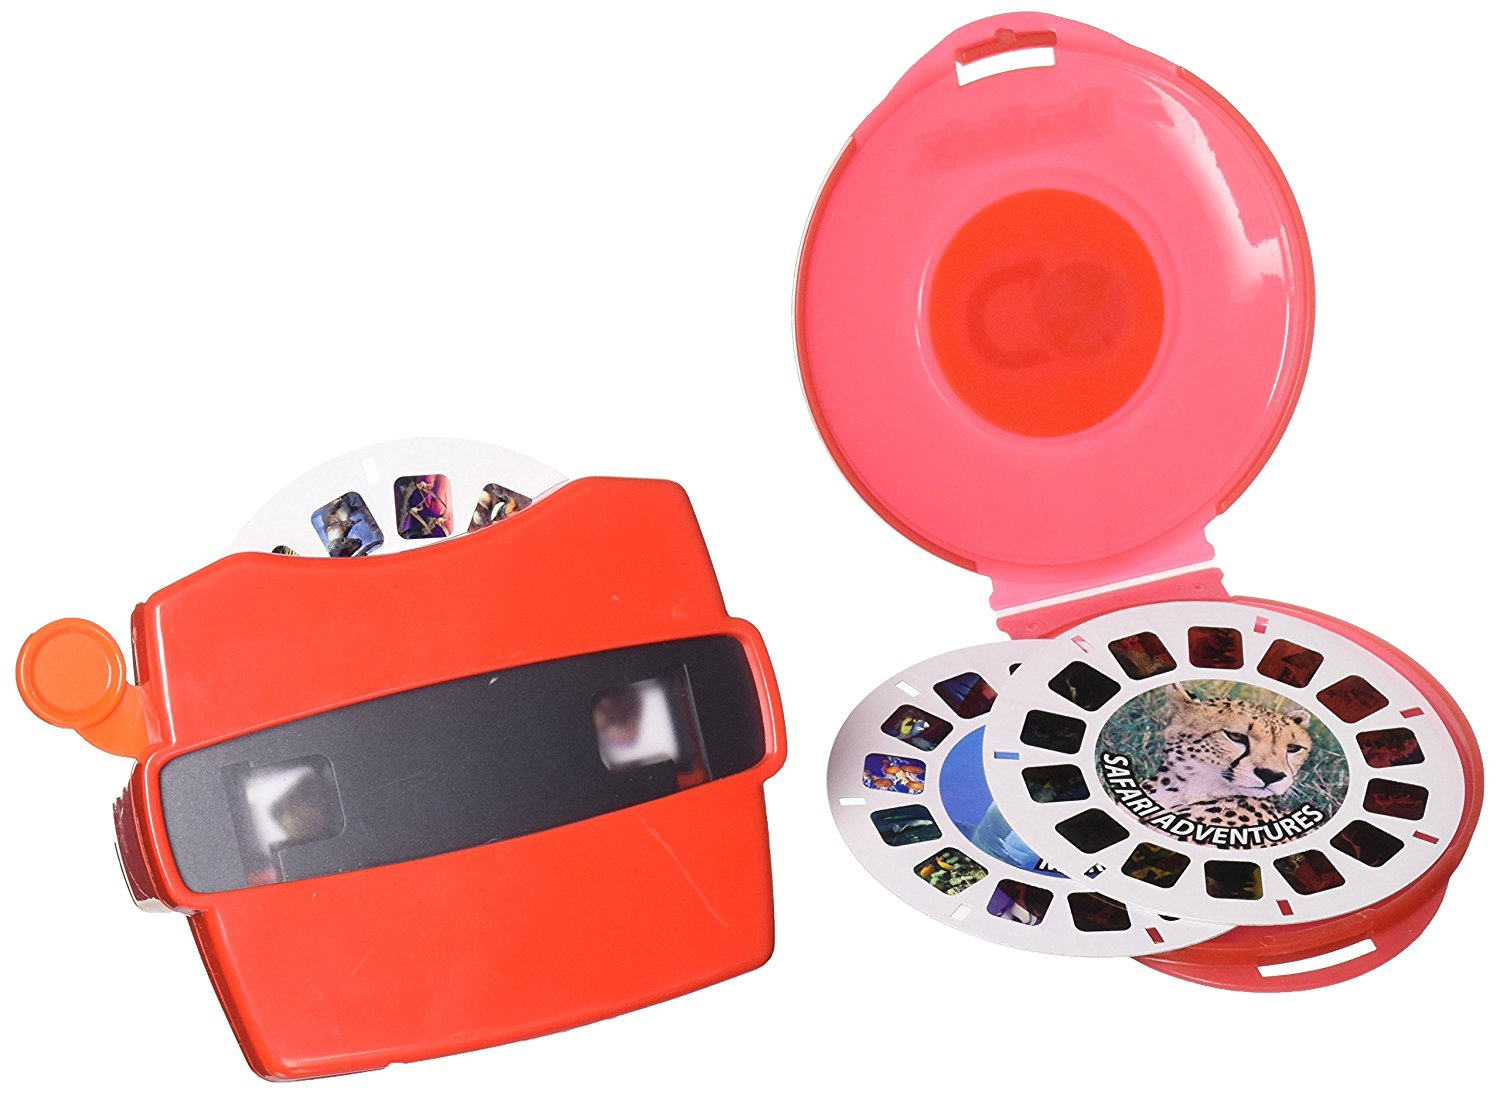 ViewMaster Boxed Set, $16 @amazon.com